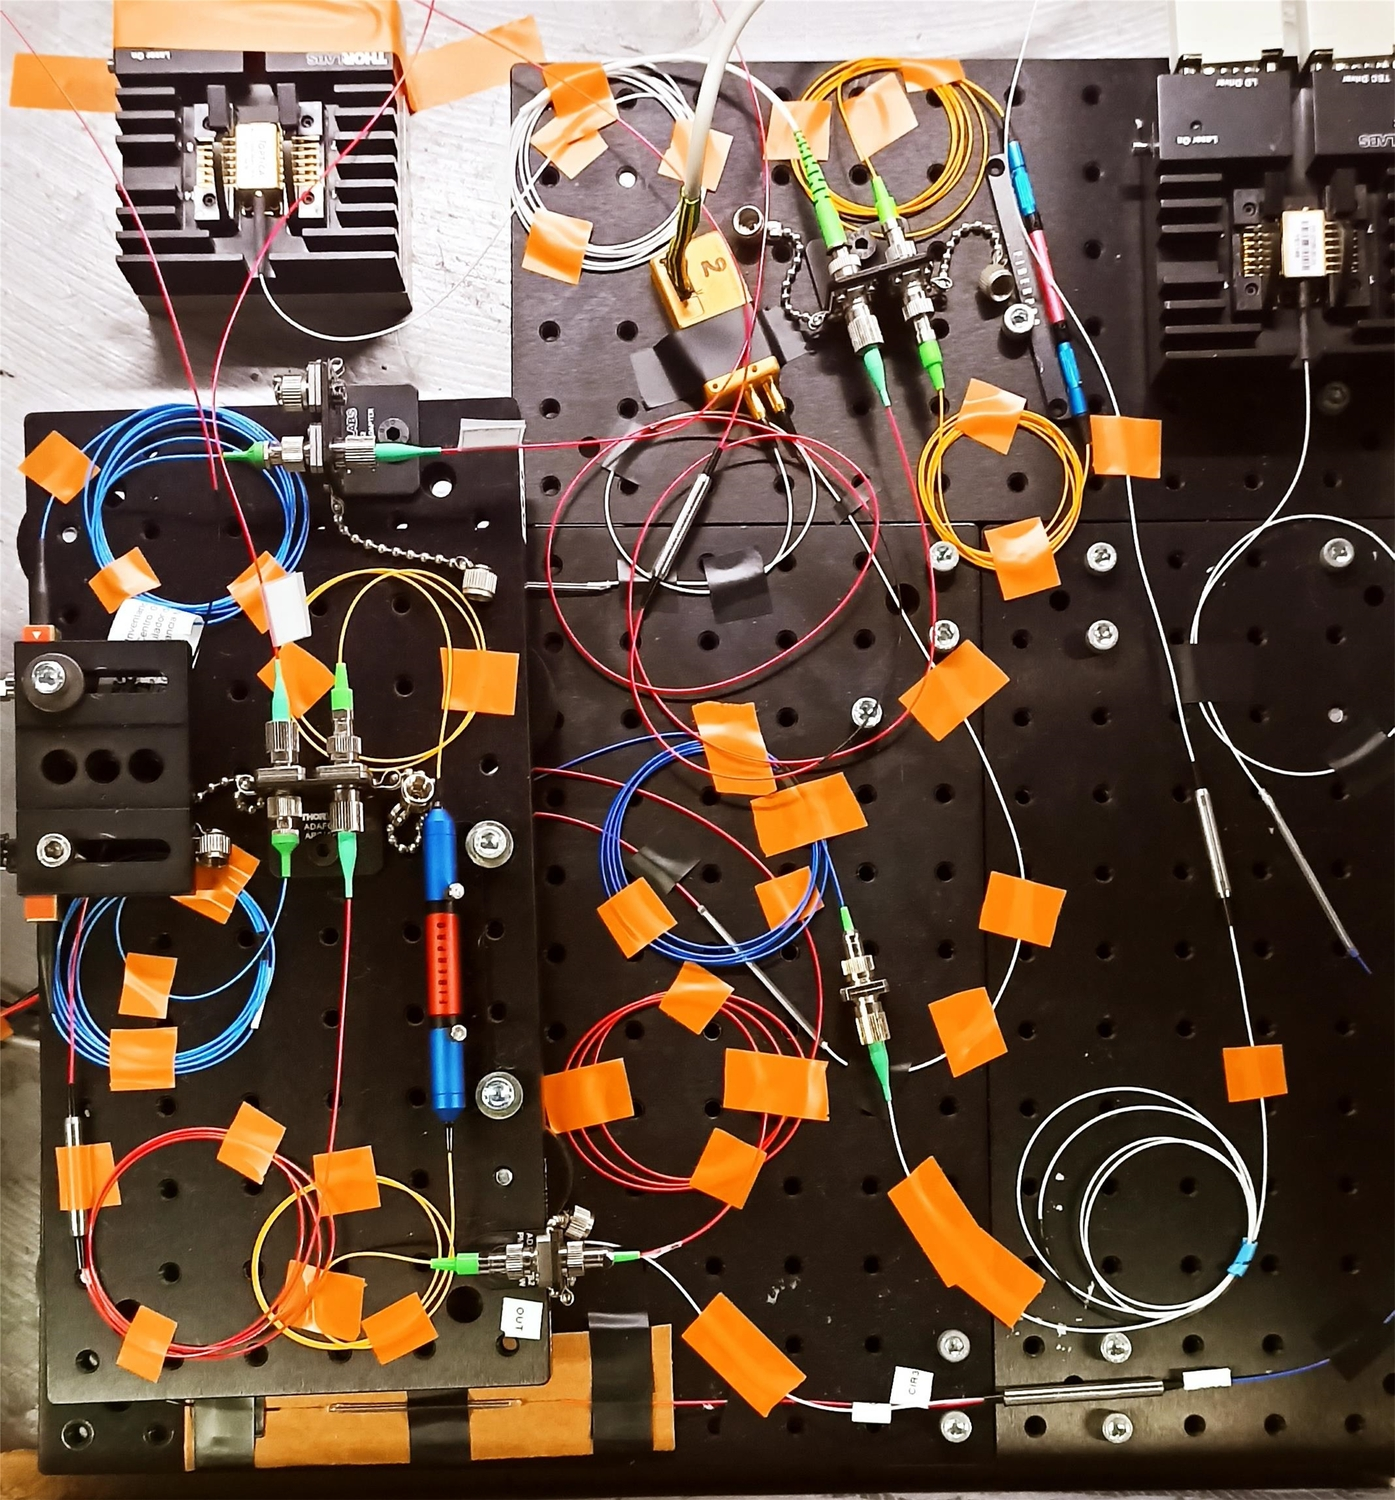 Experimental setup of the dendritic components of ADOPD consist of light conductors (rolled up), connectors (silver) and optical computing components (colored or black)